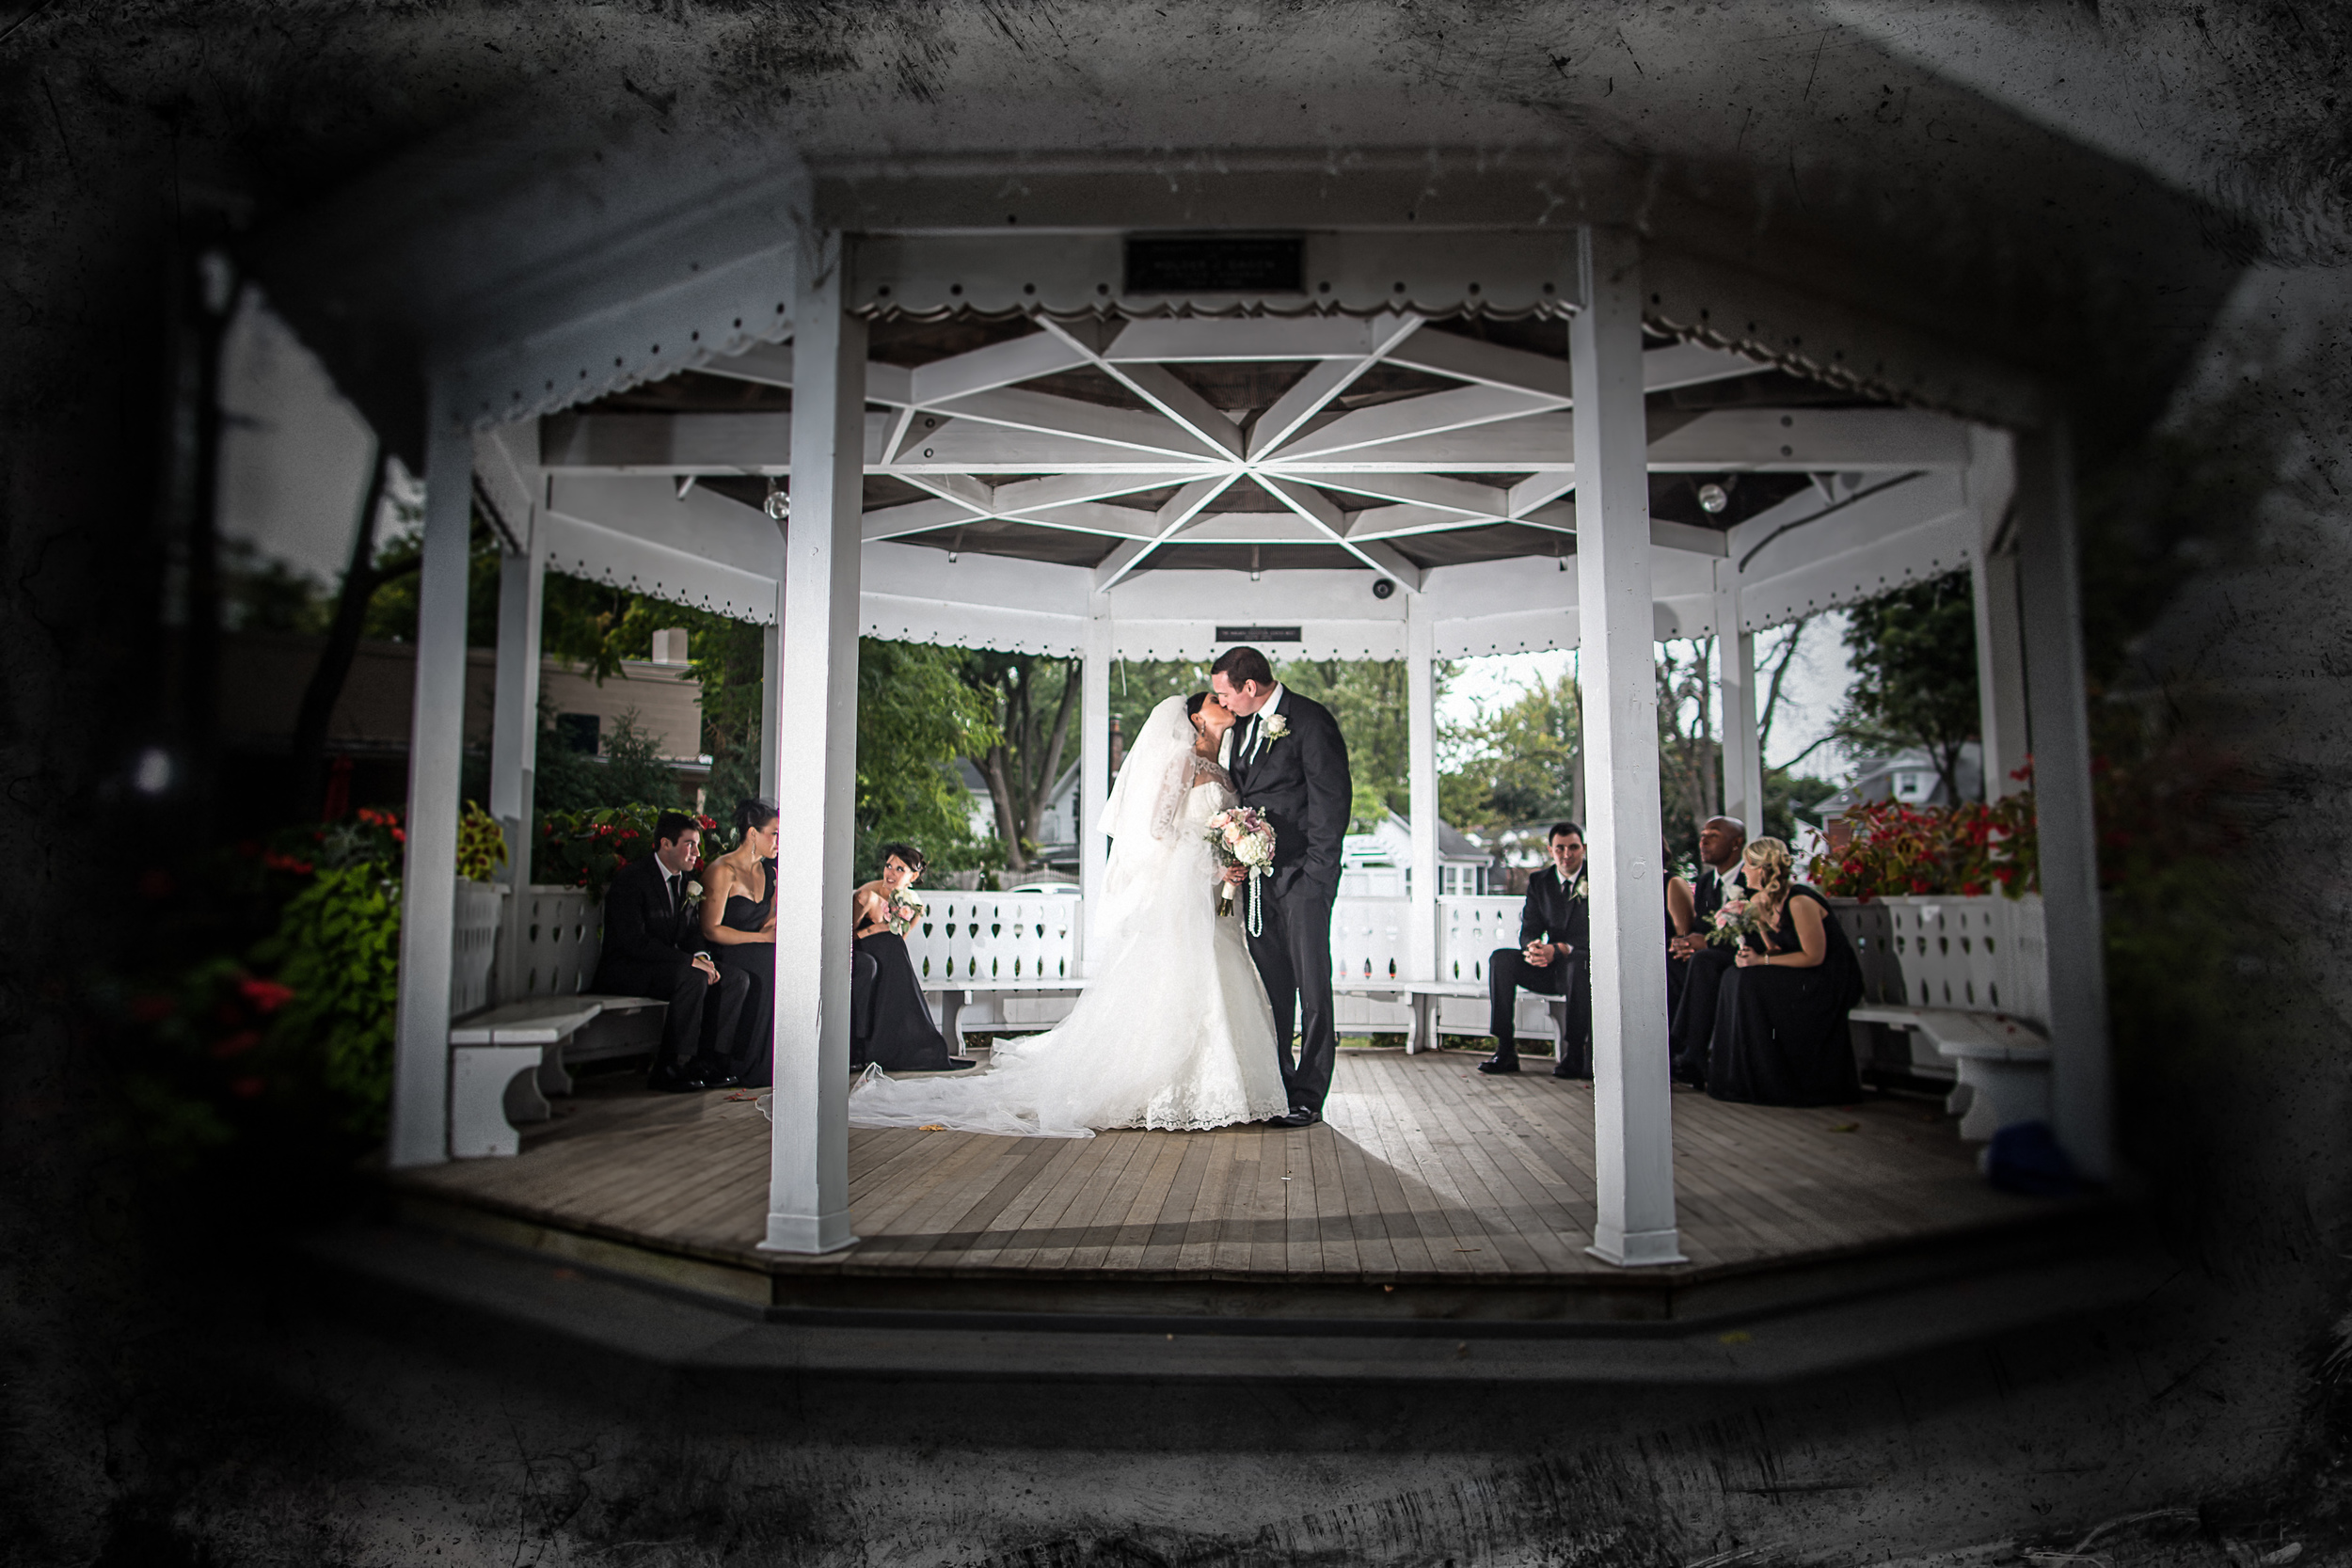 lorrina&Jacob-1269-Edit.jpg